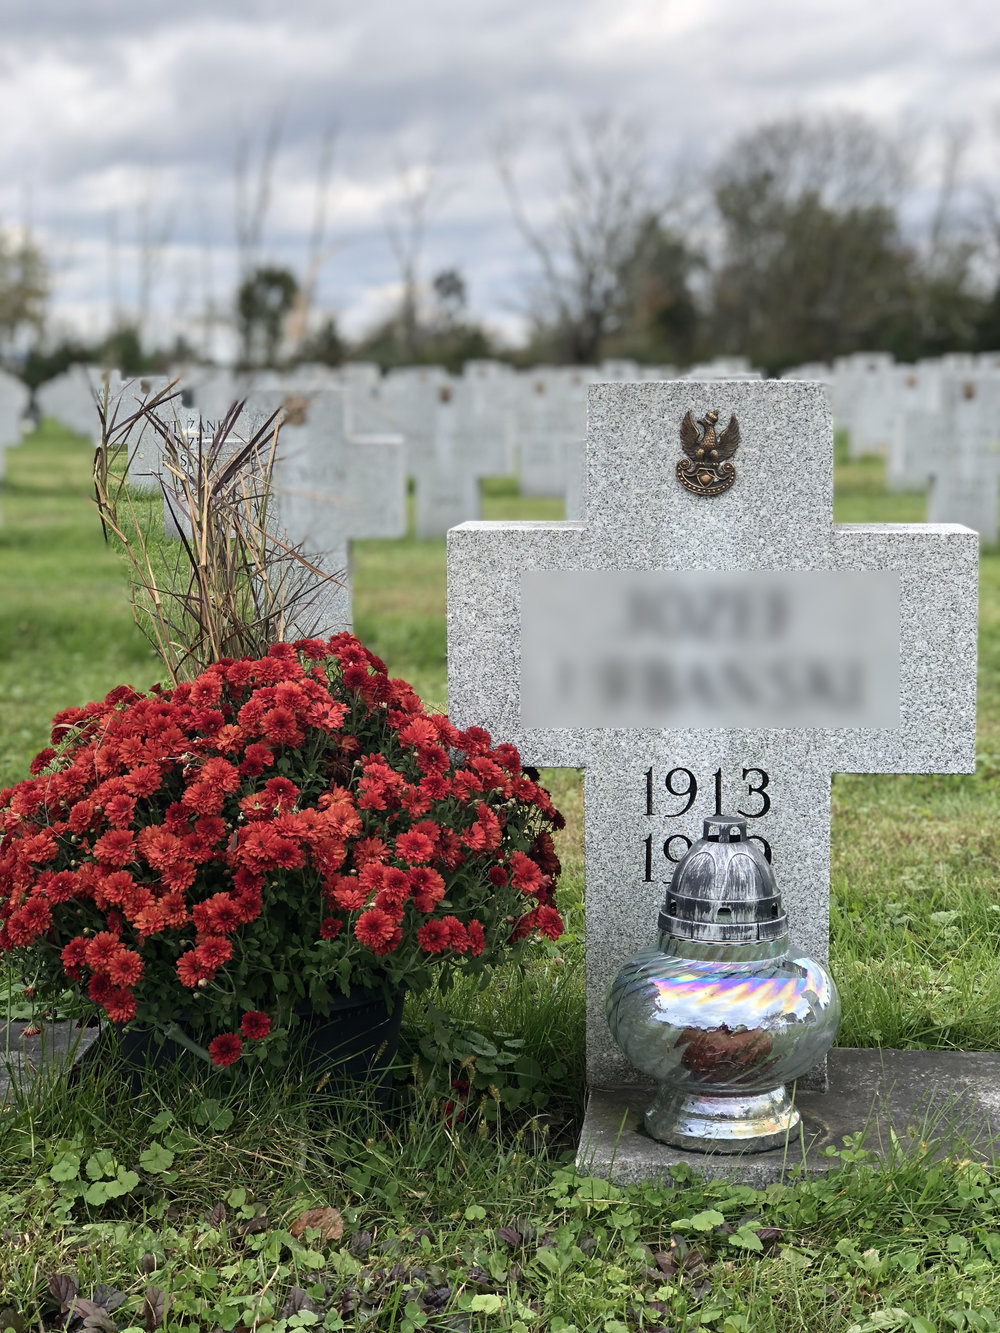 The All Saints' traditionally-decorated grave of a Polish soldier who fought in WWII at the Shrine of Our Lady of Czestochowa, Doylestown, PA.